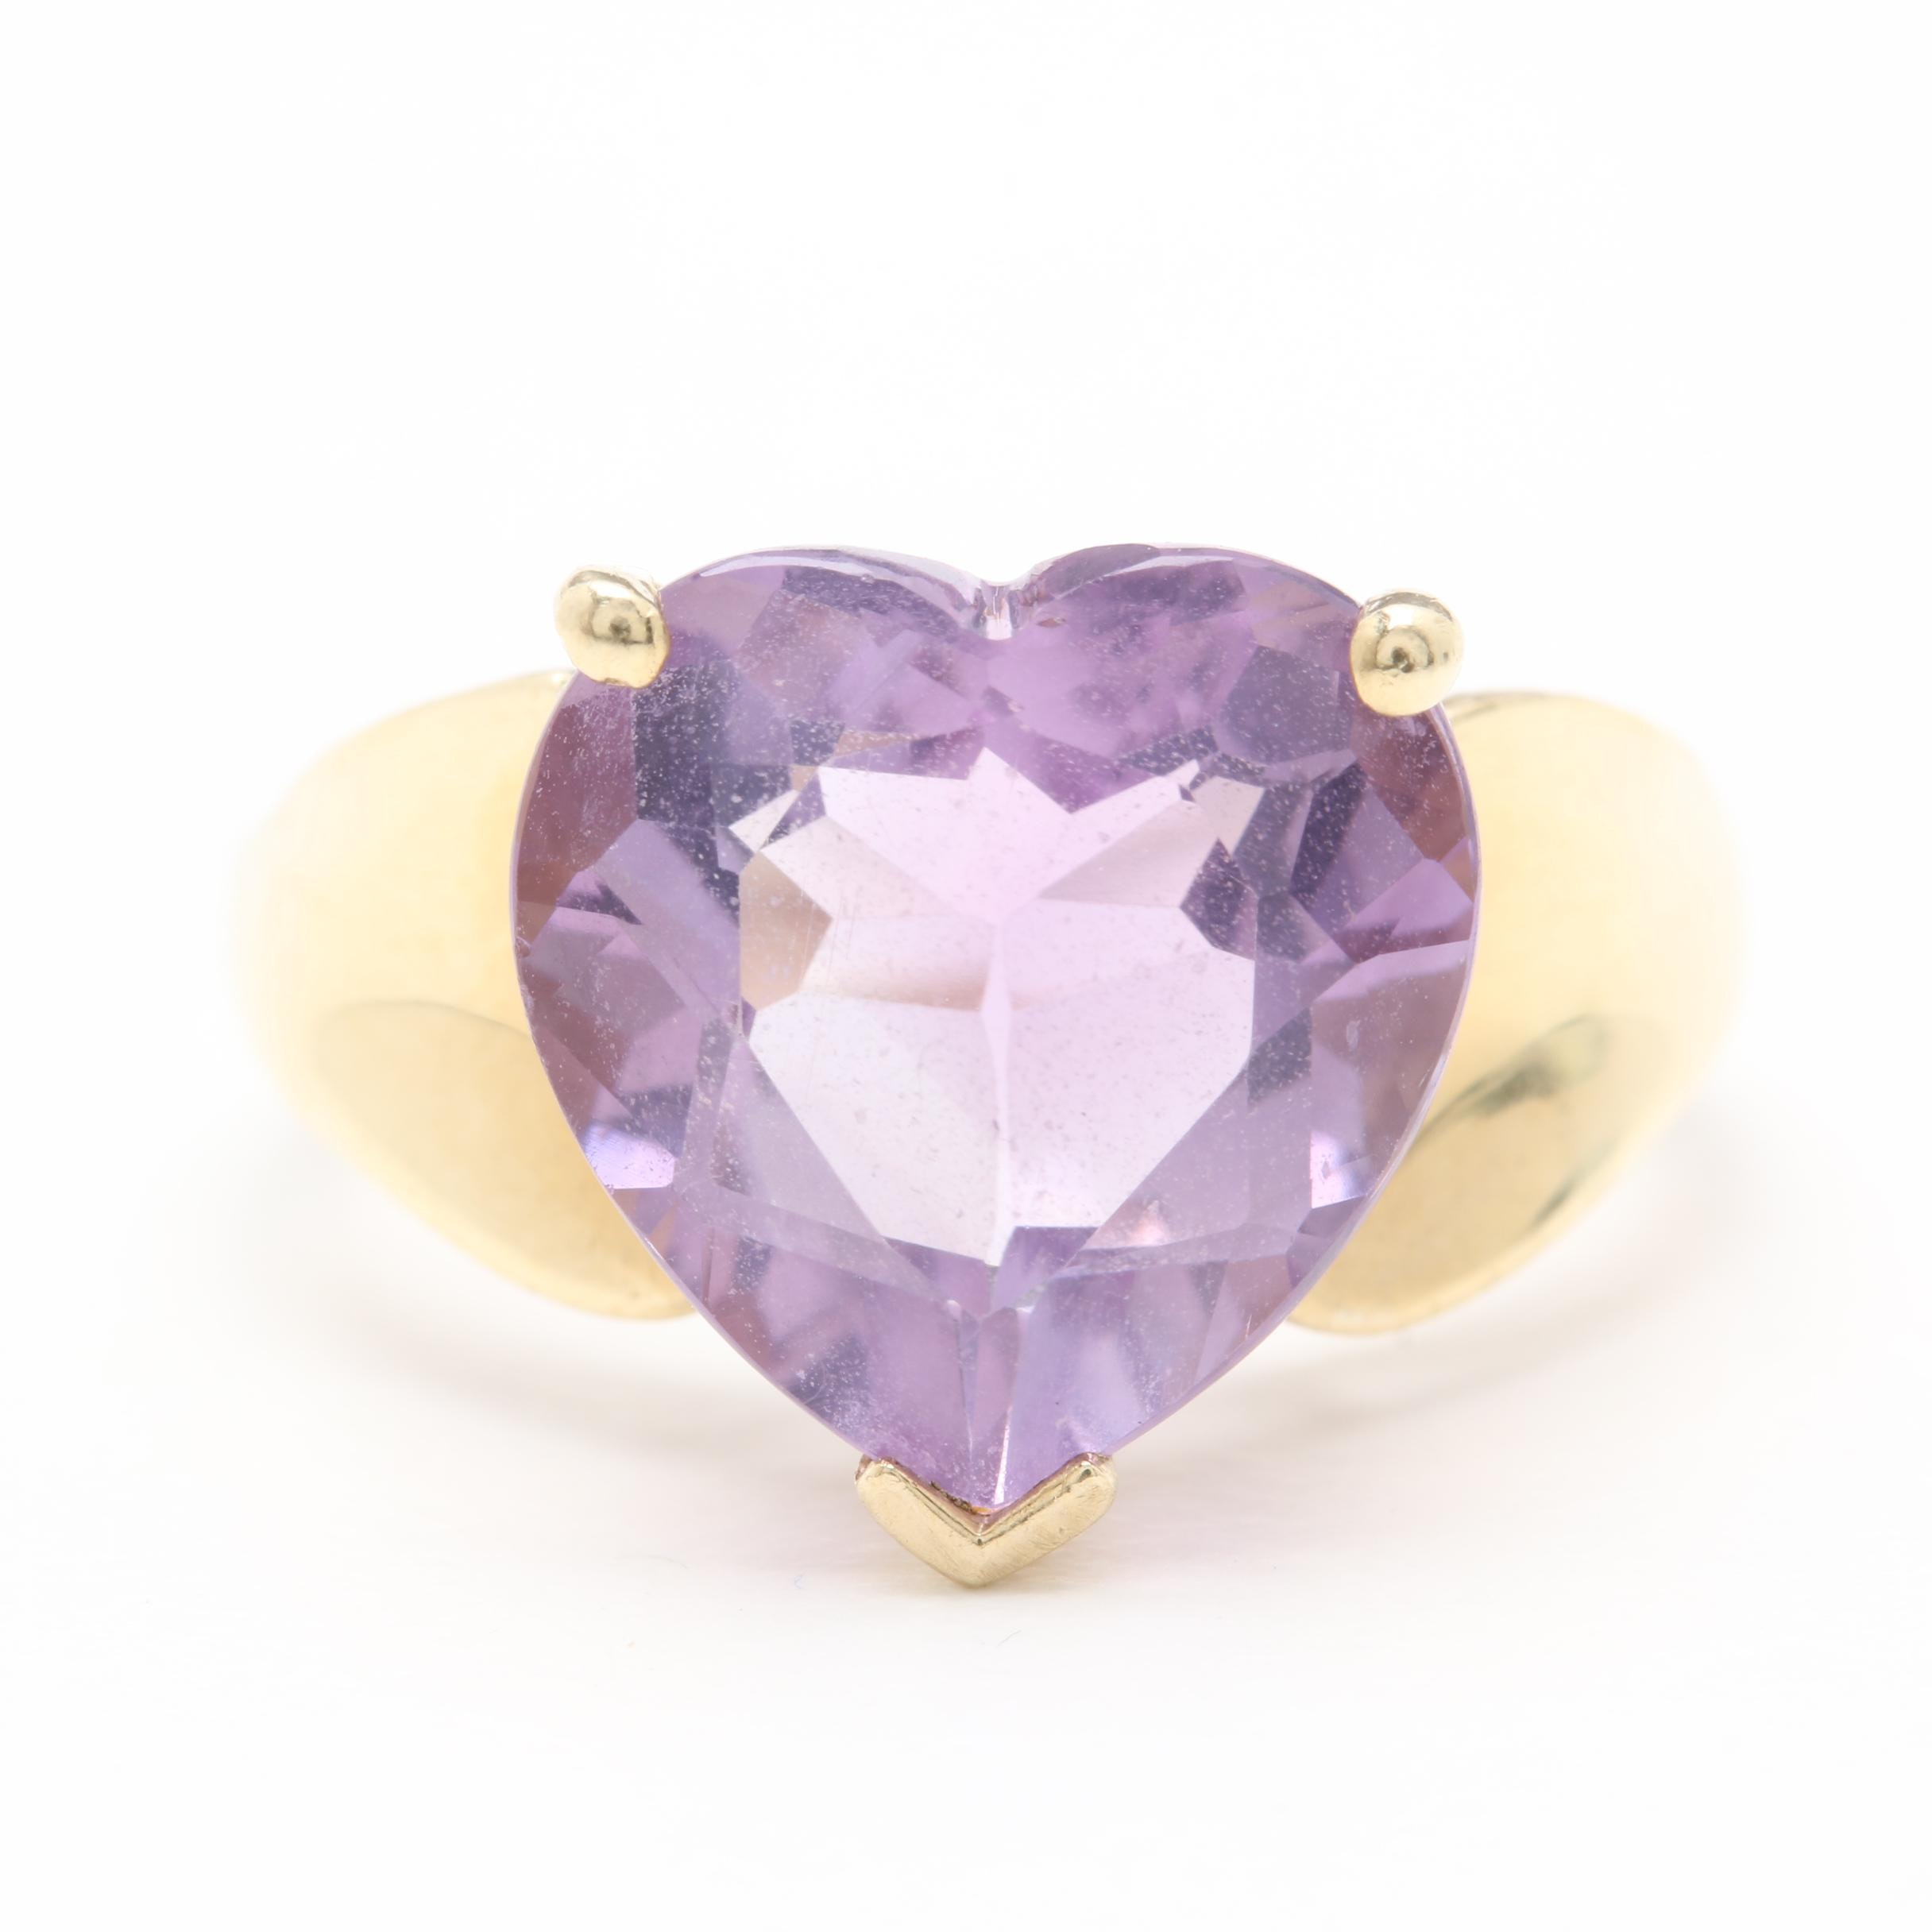 10K Yellow Gold Heart Faceted Amethyst Ring